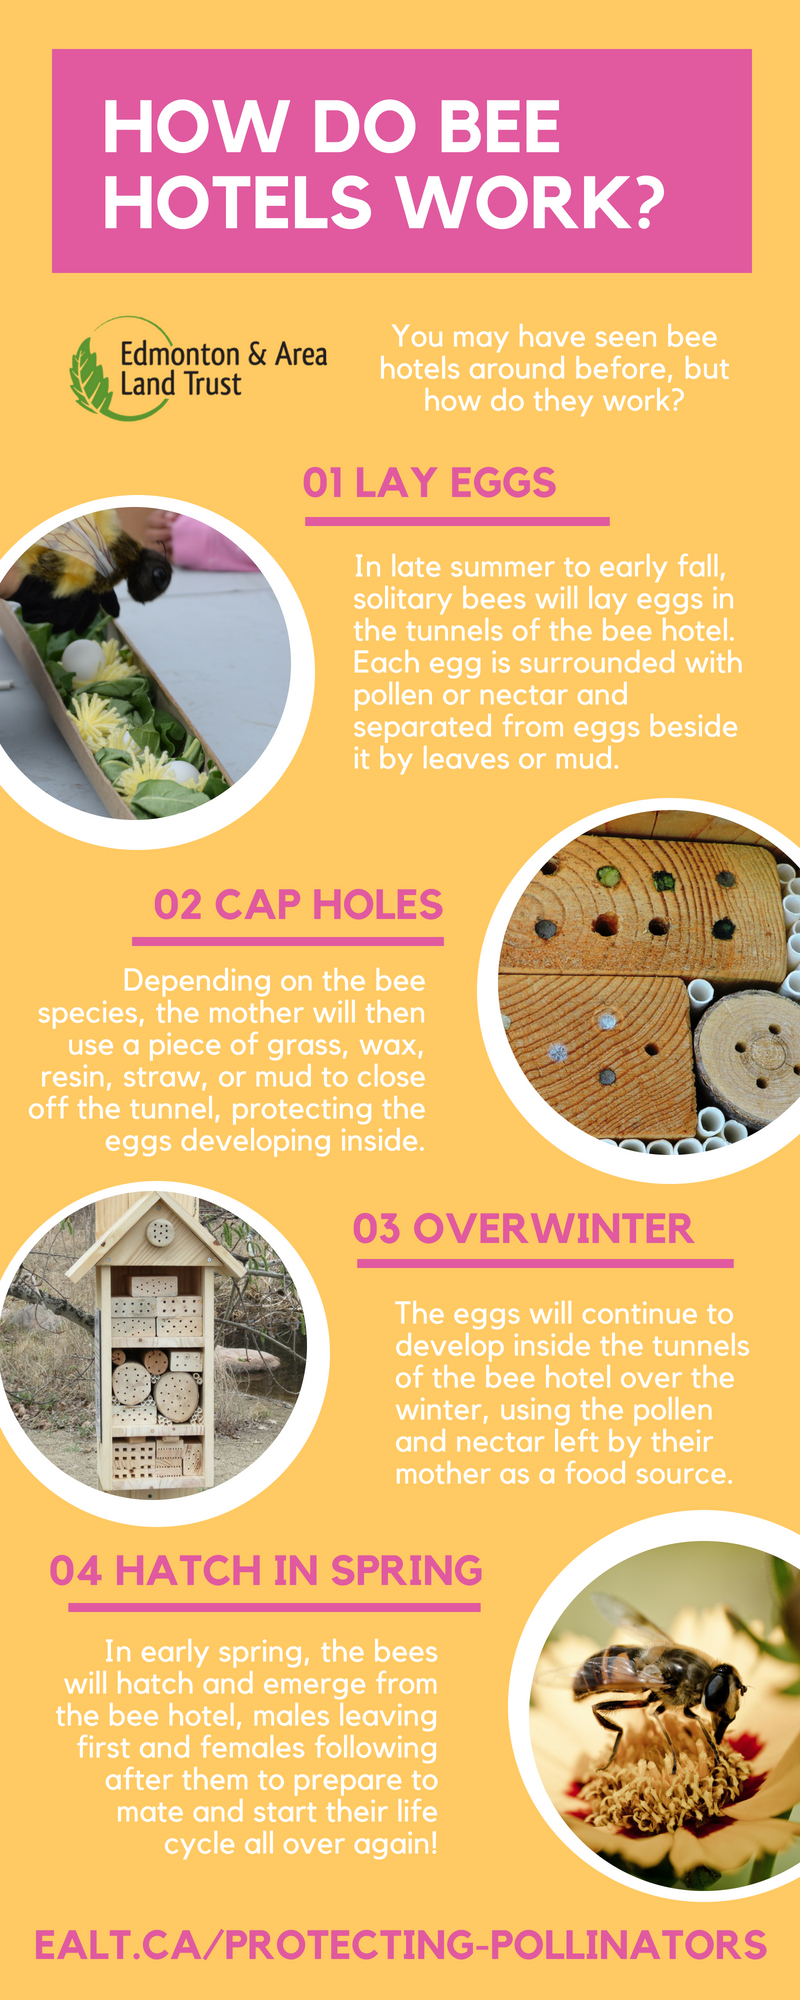 How do bee hotels work Infographic.jpg